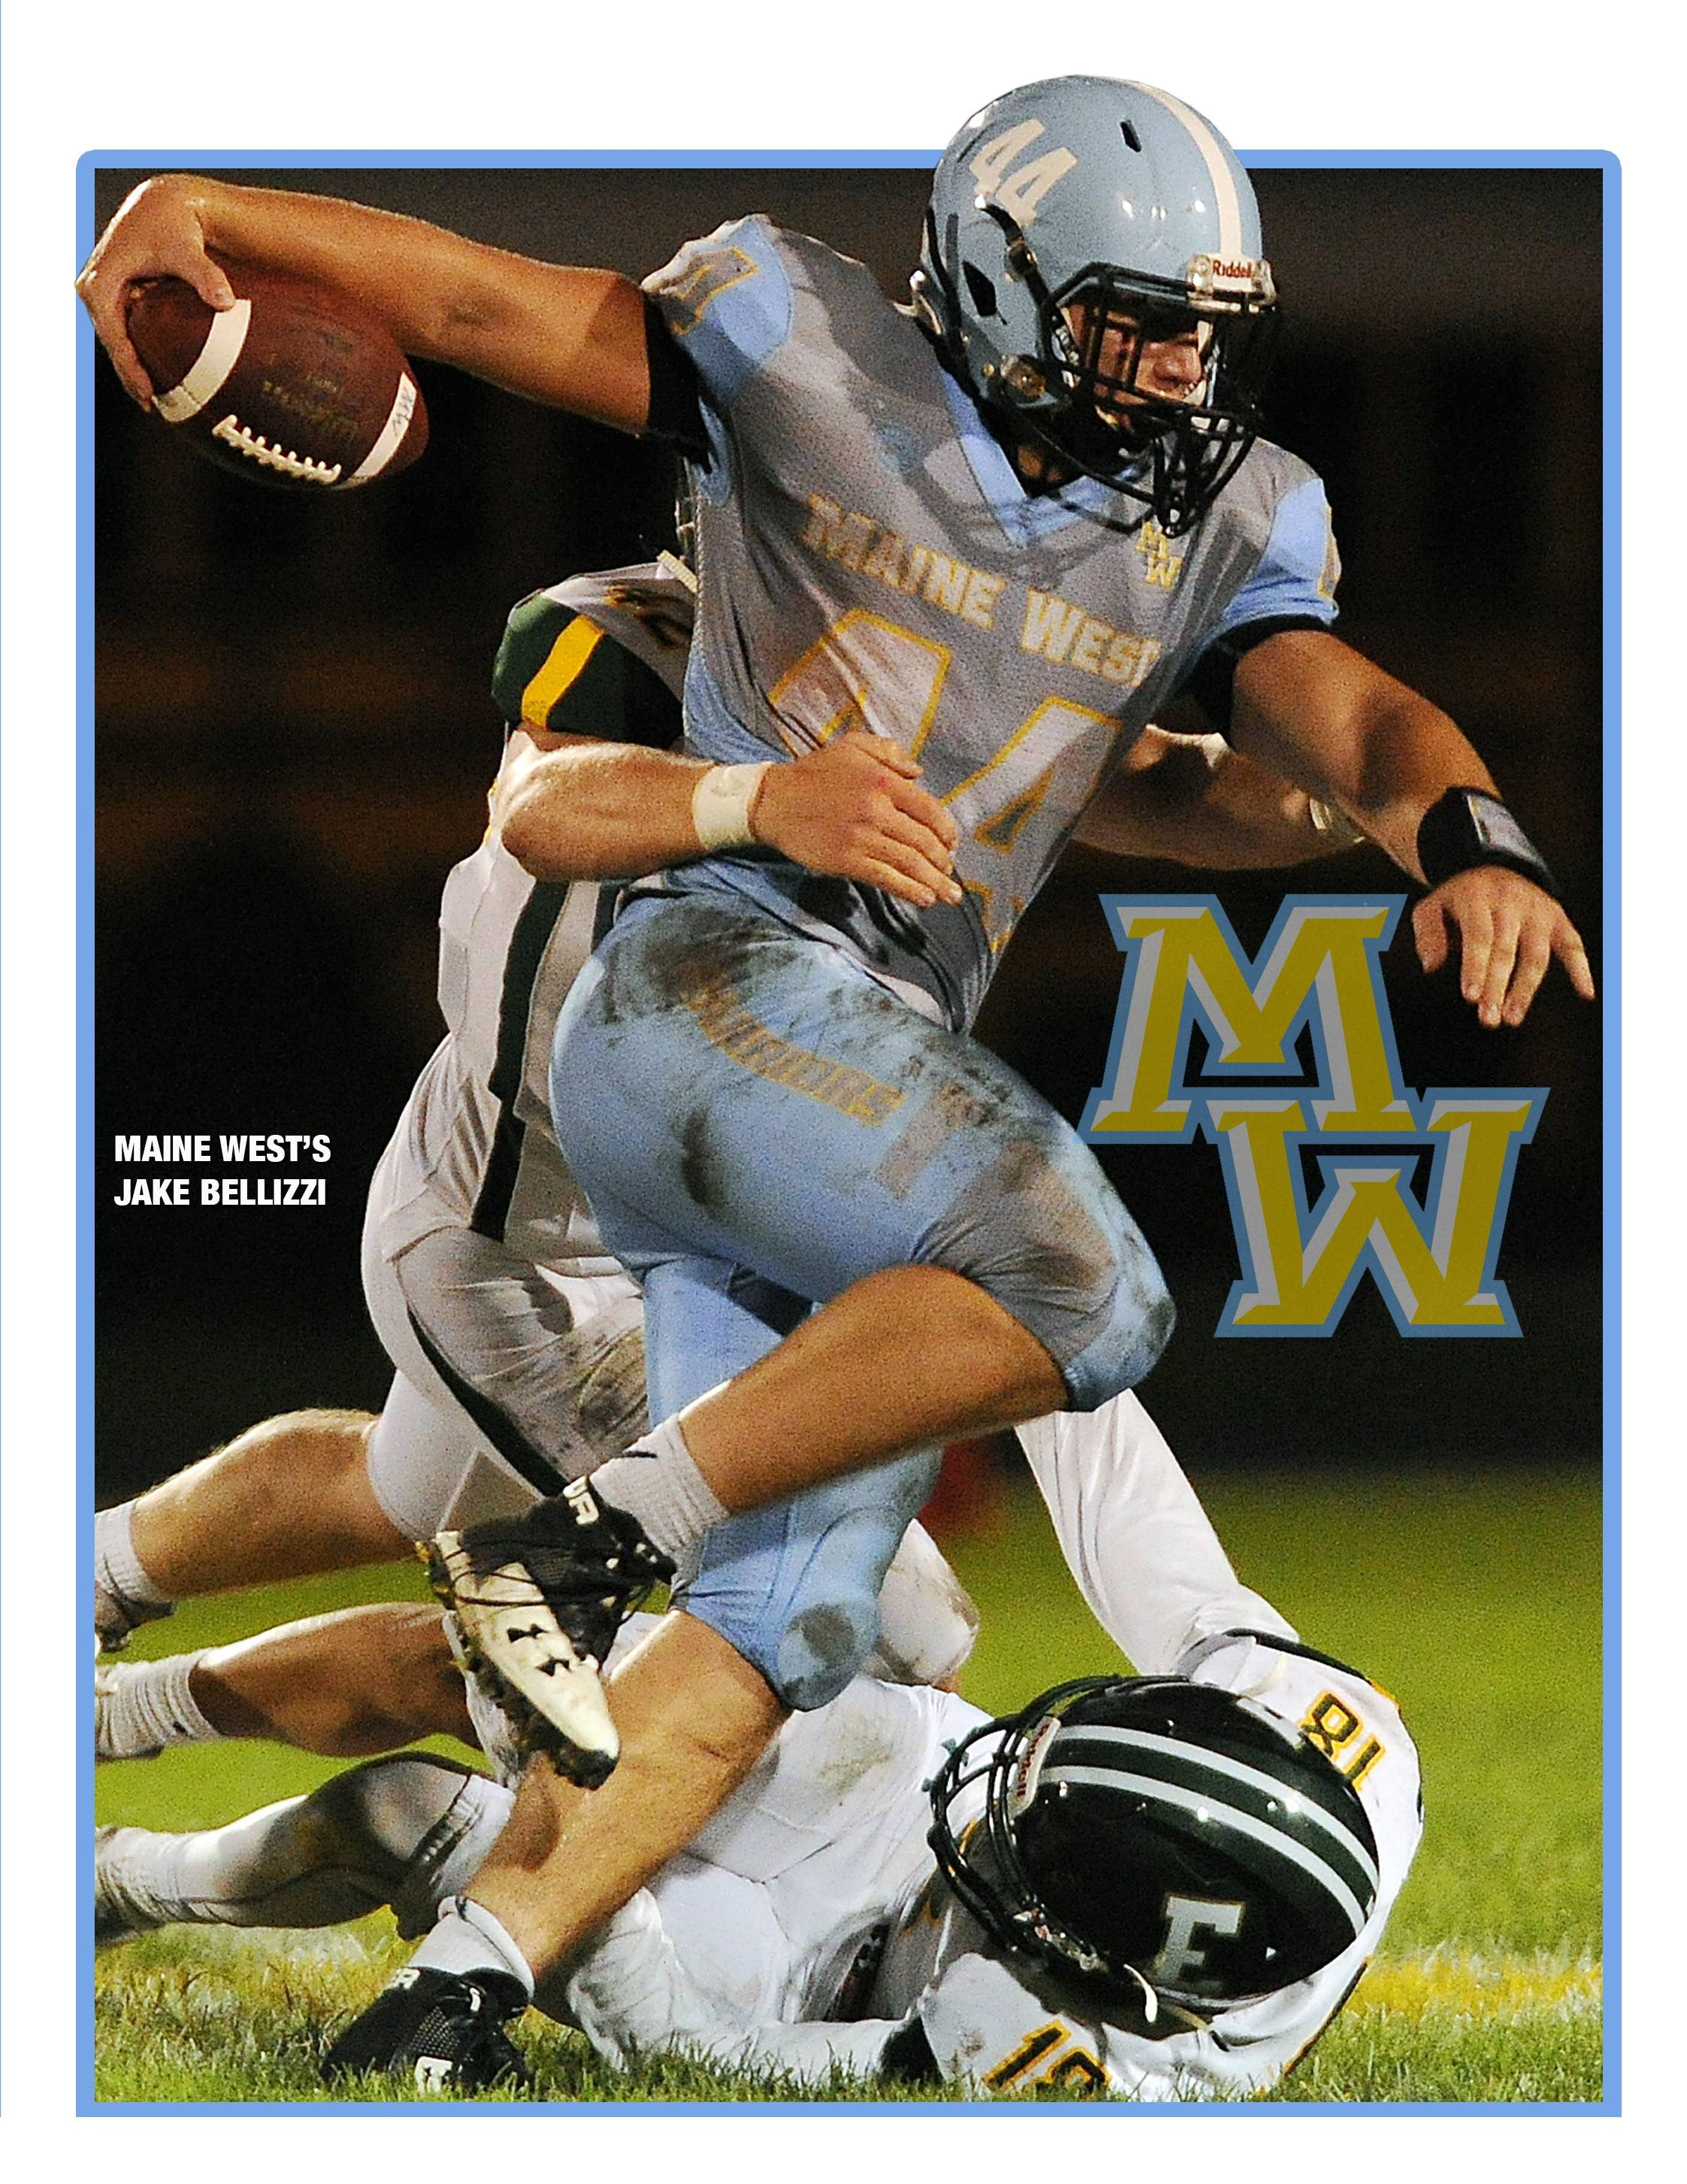 Jake Bellizzi of Maine West is a Daily Herald All-Area Team Captain.